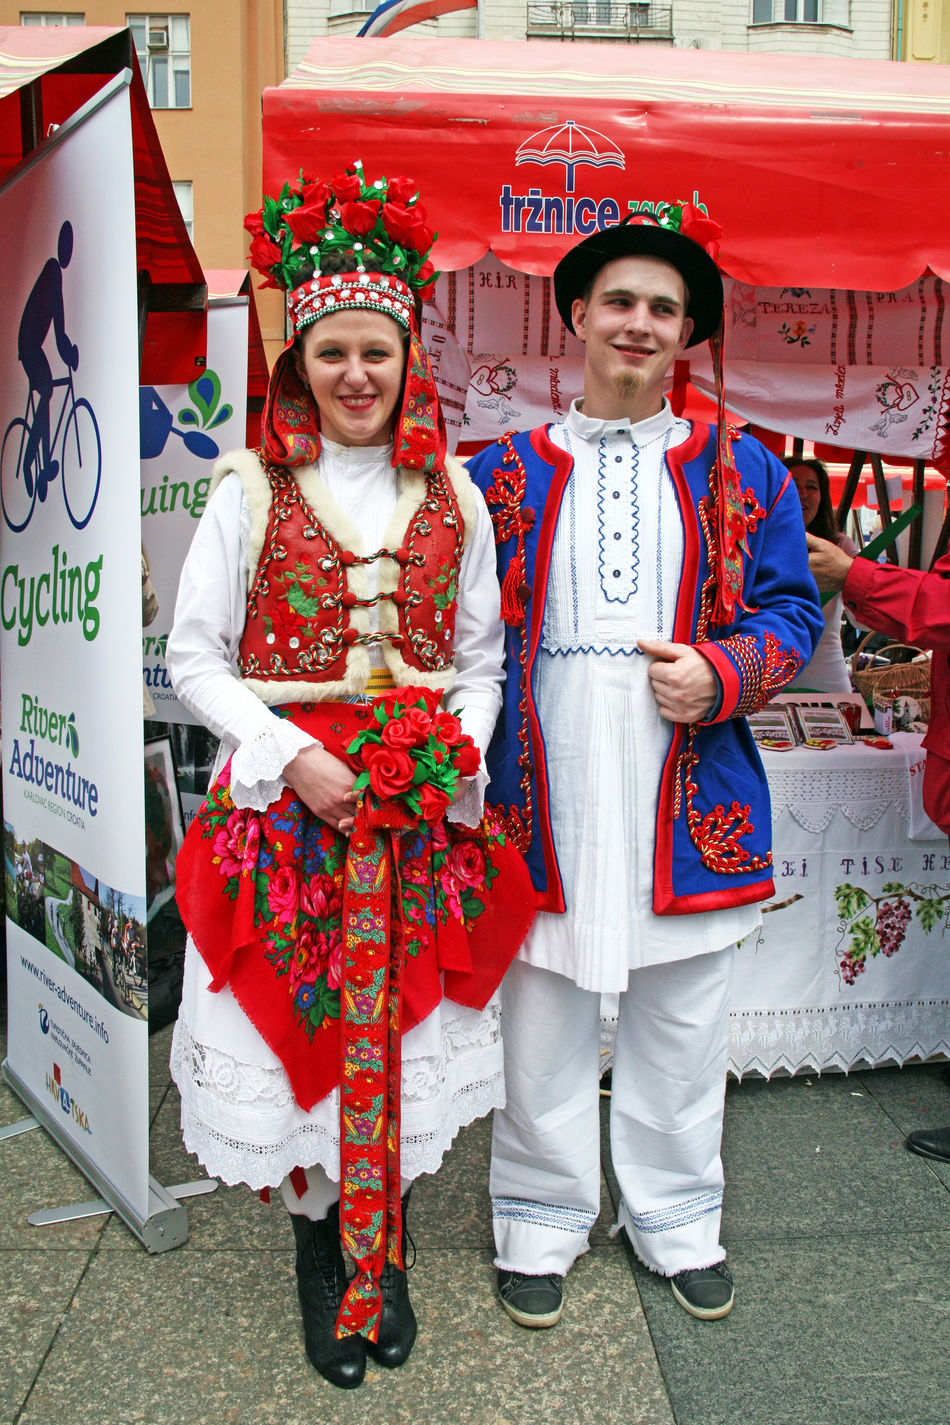 Pair in national costumes,Karlovac's county fair, Zagreb,Croatia,EU,2016. Colourful Croatia Cultures Eu Fair Happiness Karlovac's County Fair Outdoors Pair Picturesque Portrait Smiling Toothy Smile Traditional Clothing Young Pair Zagreb